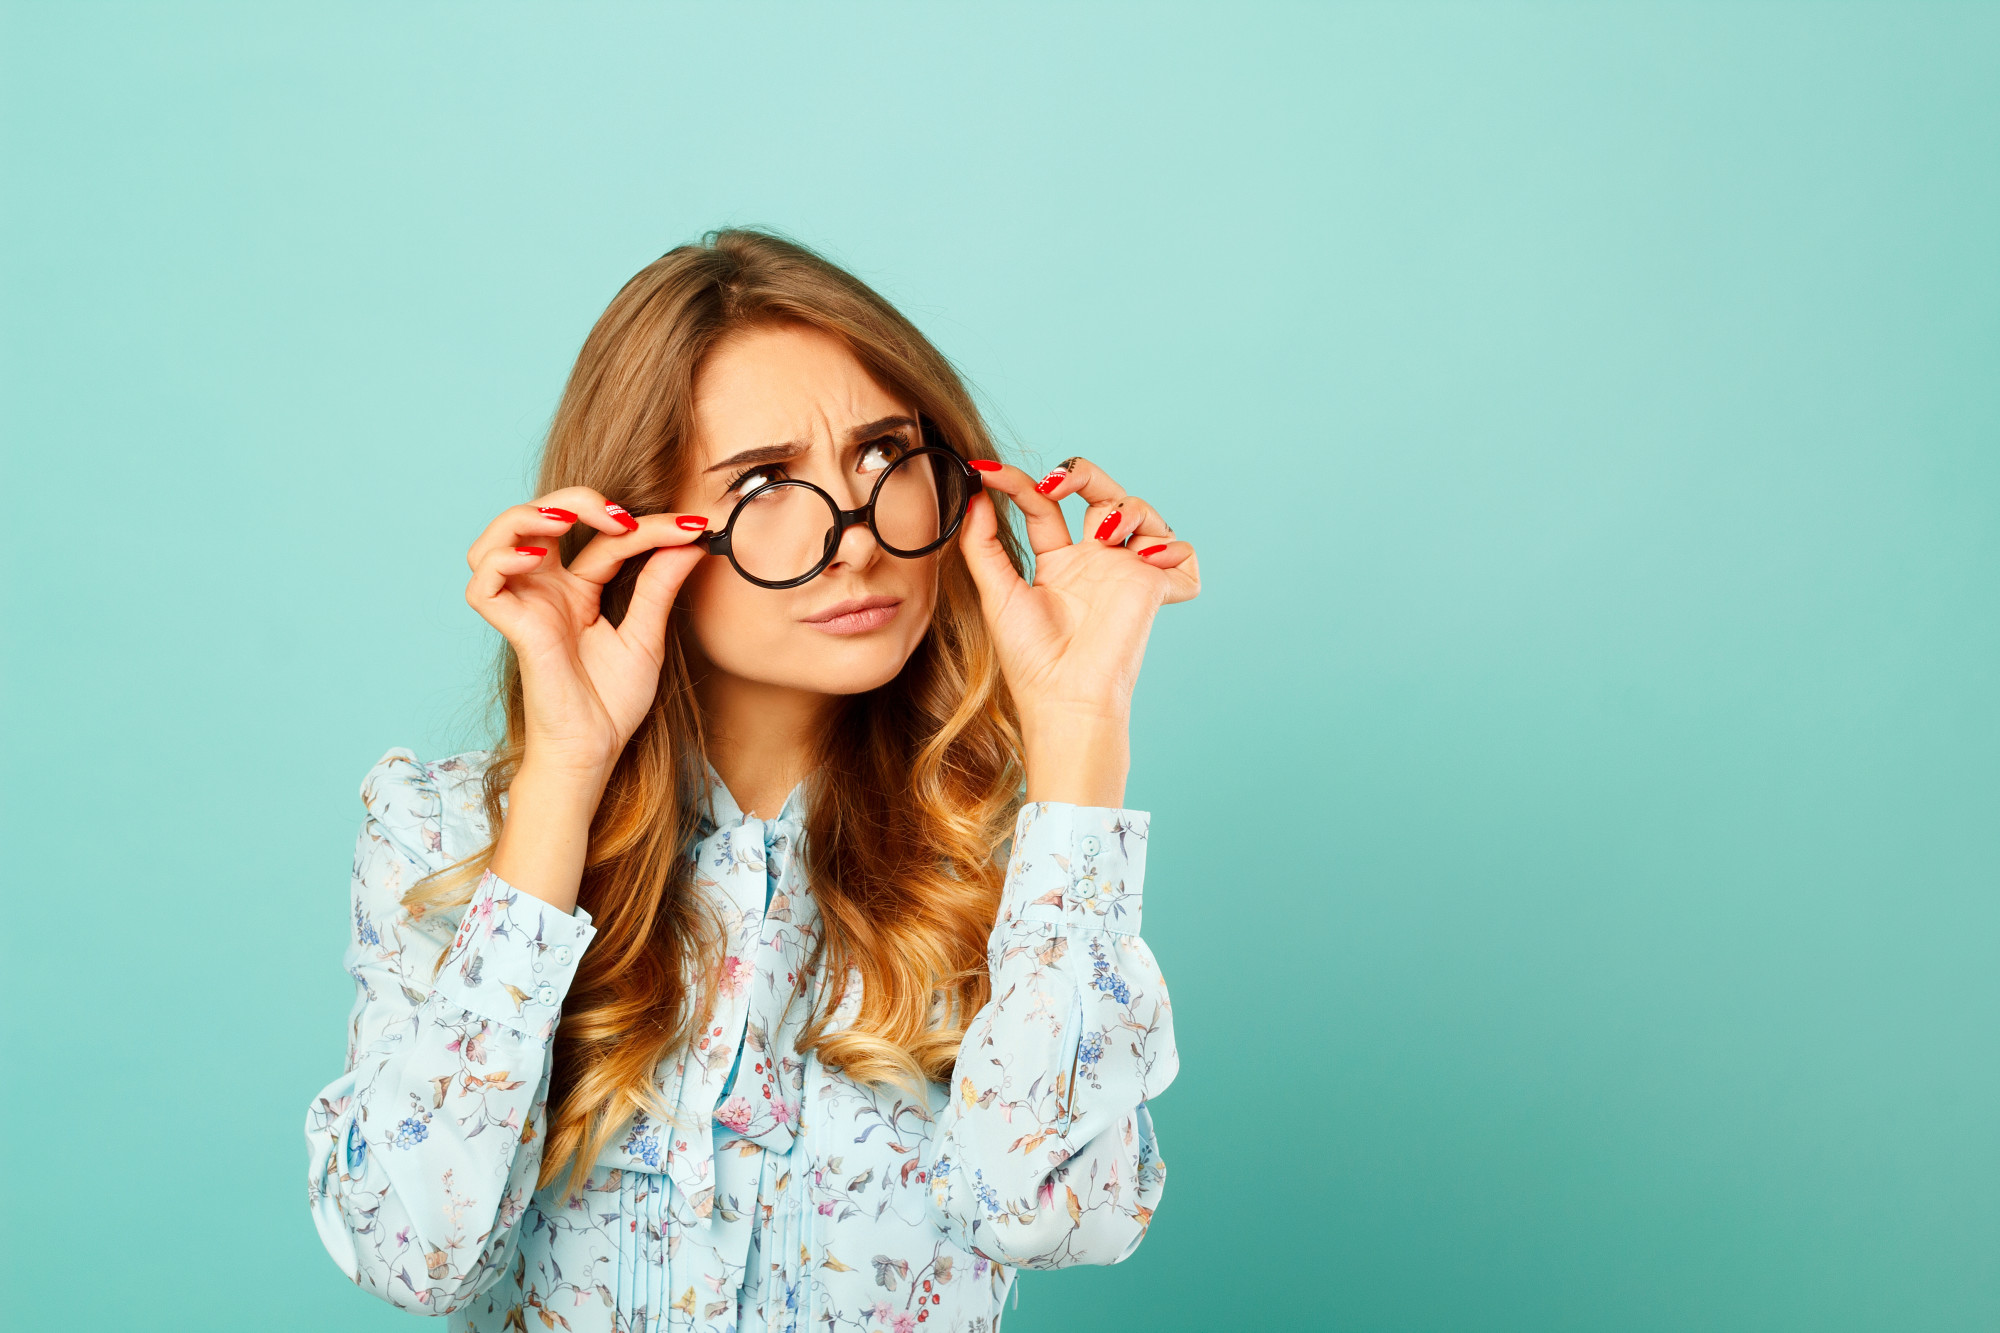 If you are looking to buy glasses in the near future, you'll want to make sure you consider these five factors before deciding.